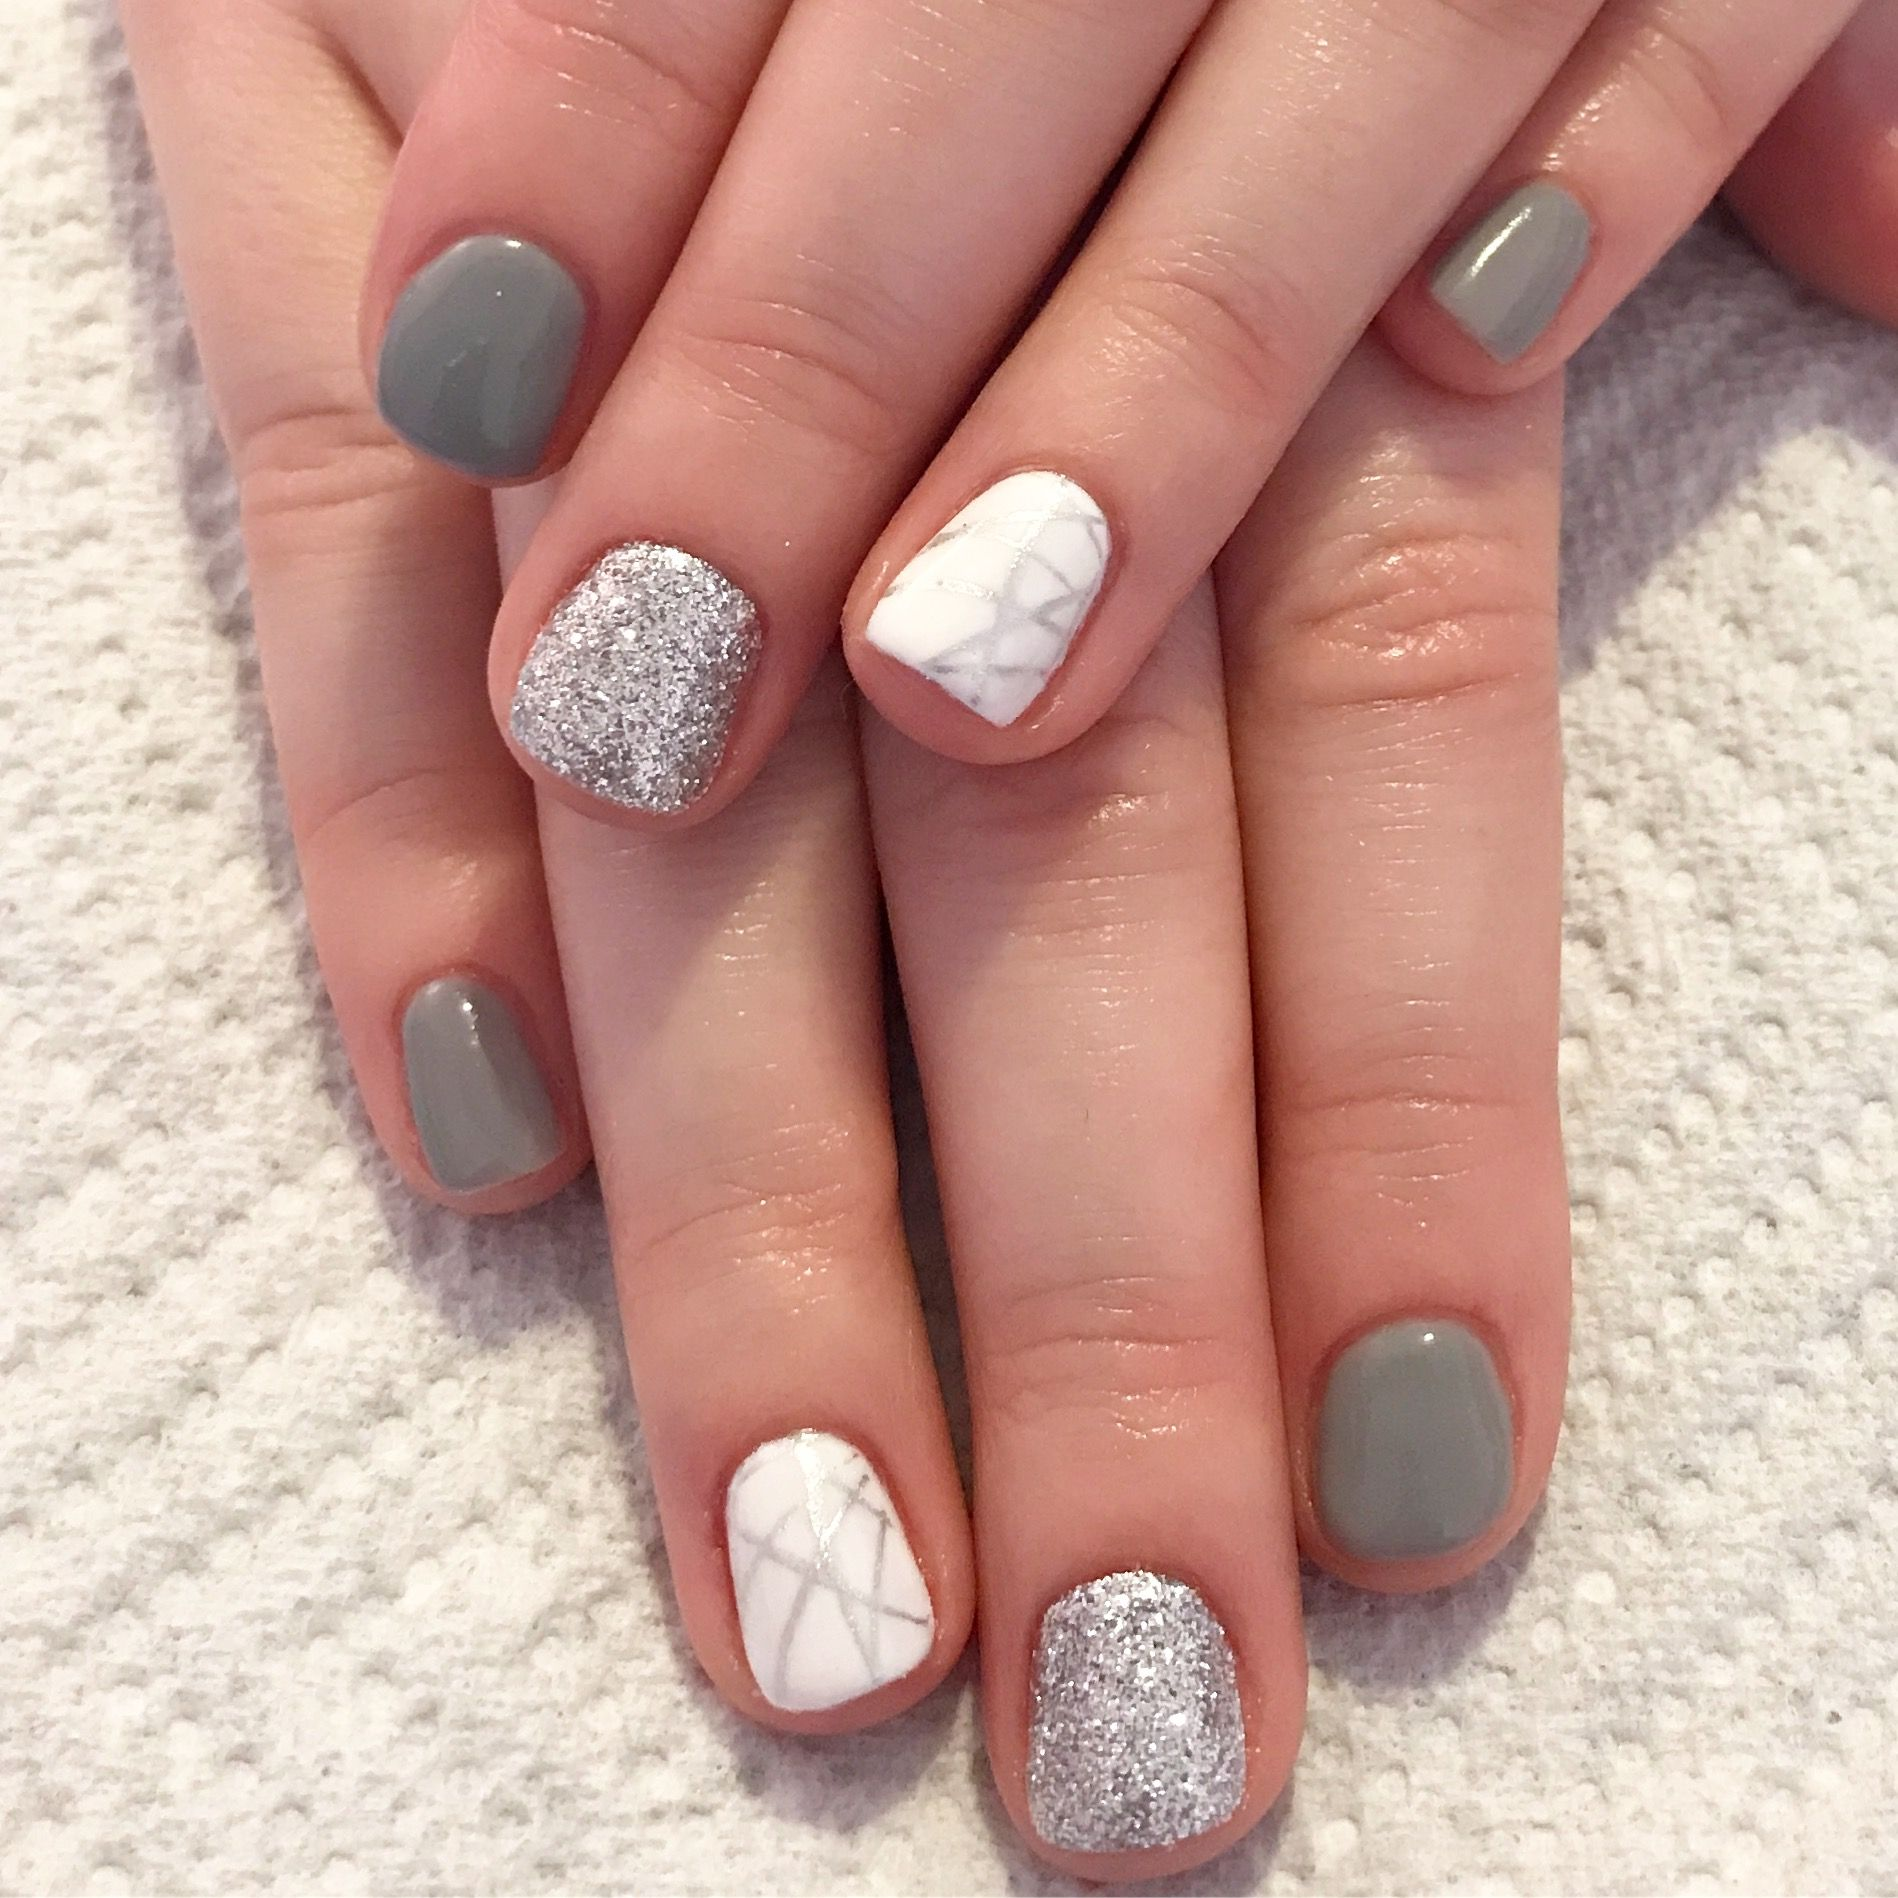 Grey Nails White Nails Glitter Nails Gel Nails Natural Nails Nail Stamp Light Grey Nails Gel Polish Grey Gel Nails Glitter Gel Polish Trendy Nails